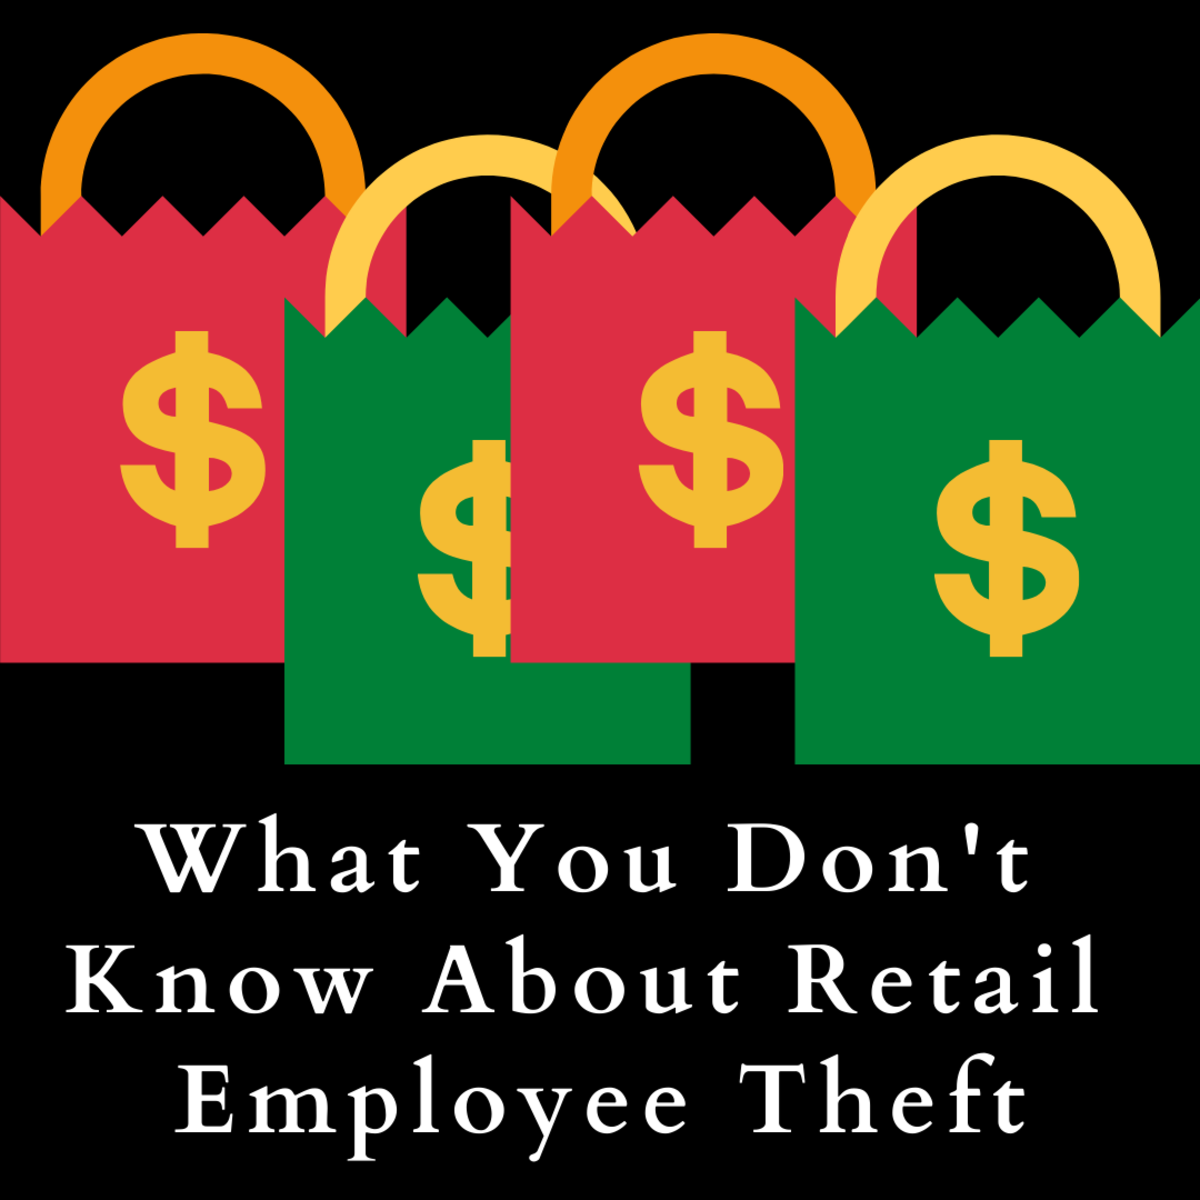 Employee theft is more common than you'd think. Read on to learn more.